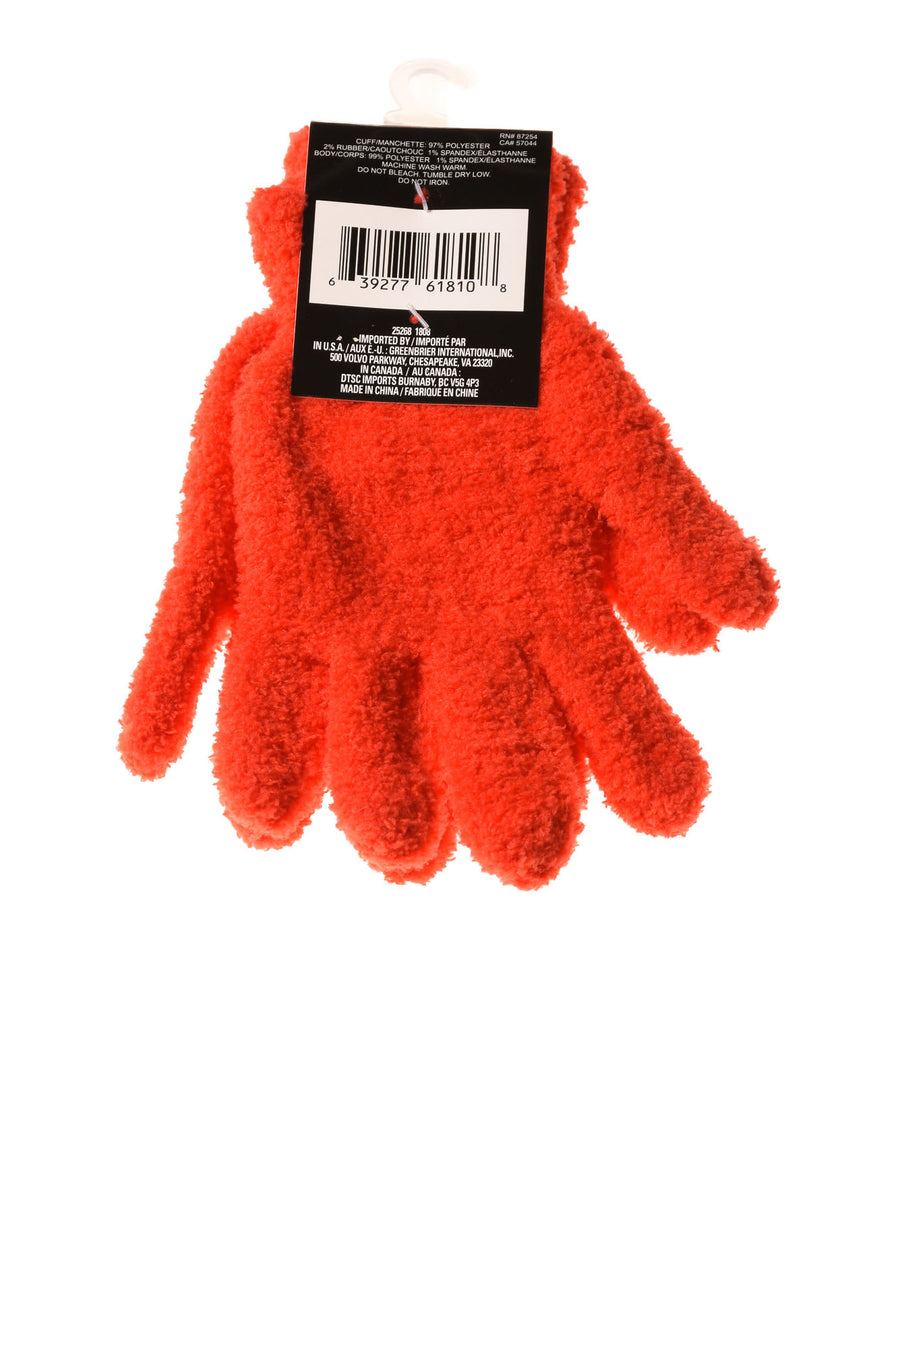 NEW Snugadoo Too Women's Gloves One Size Red